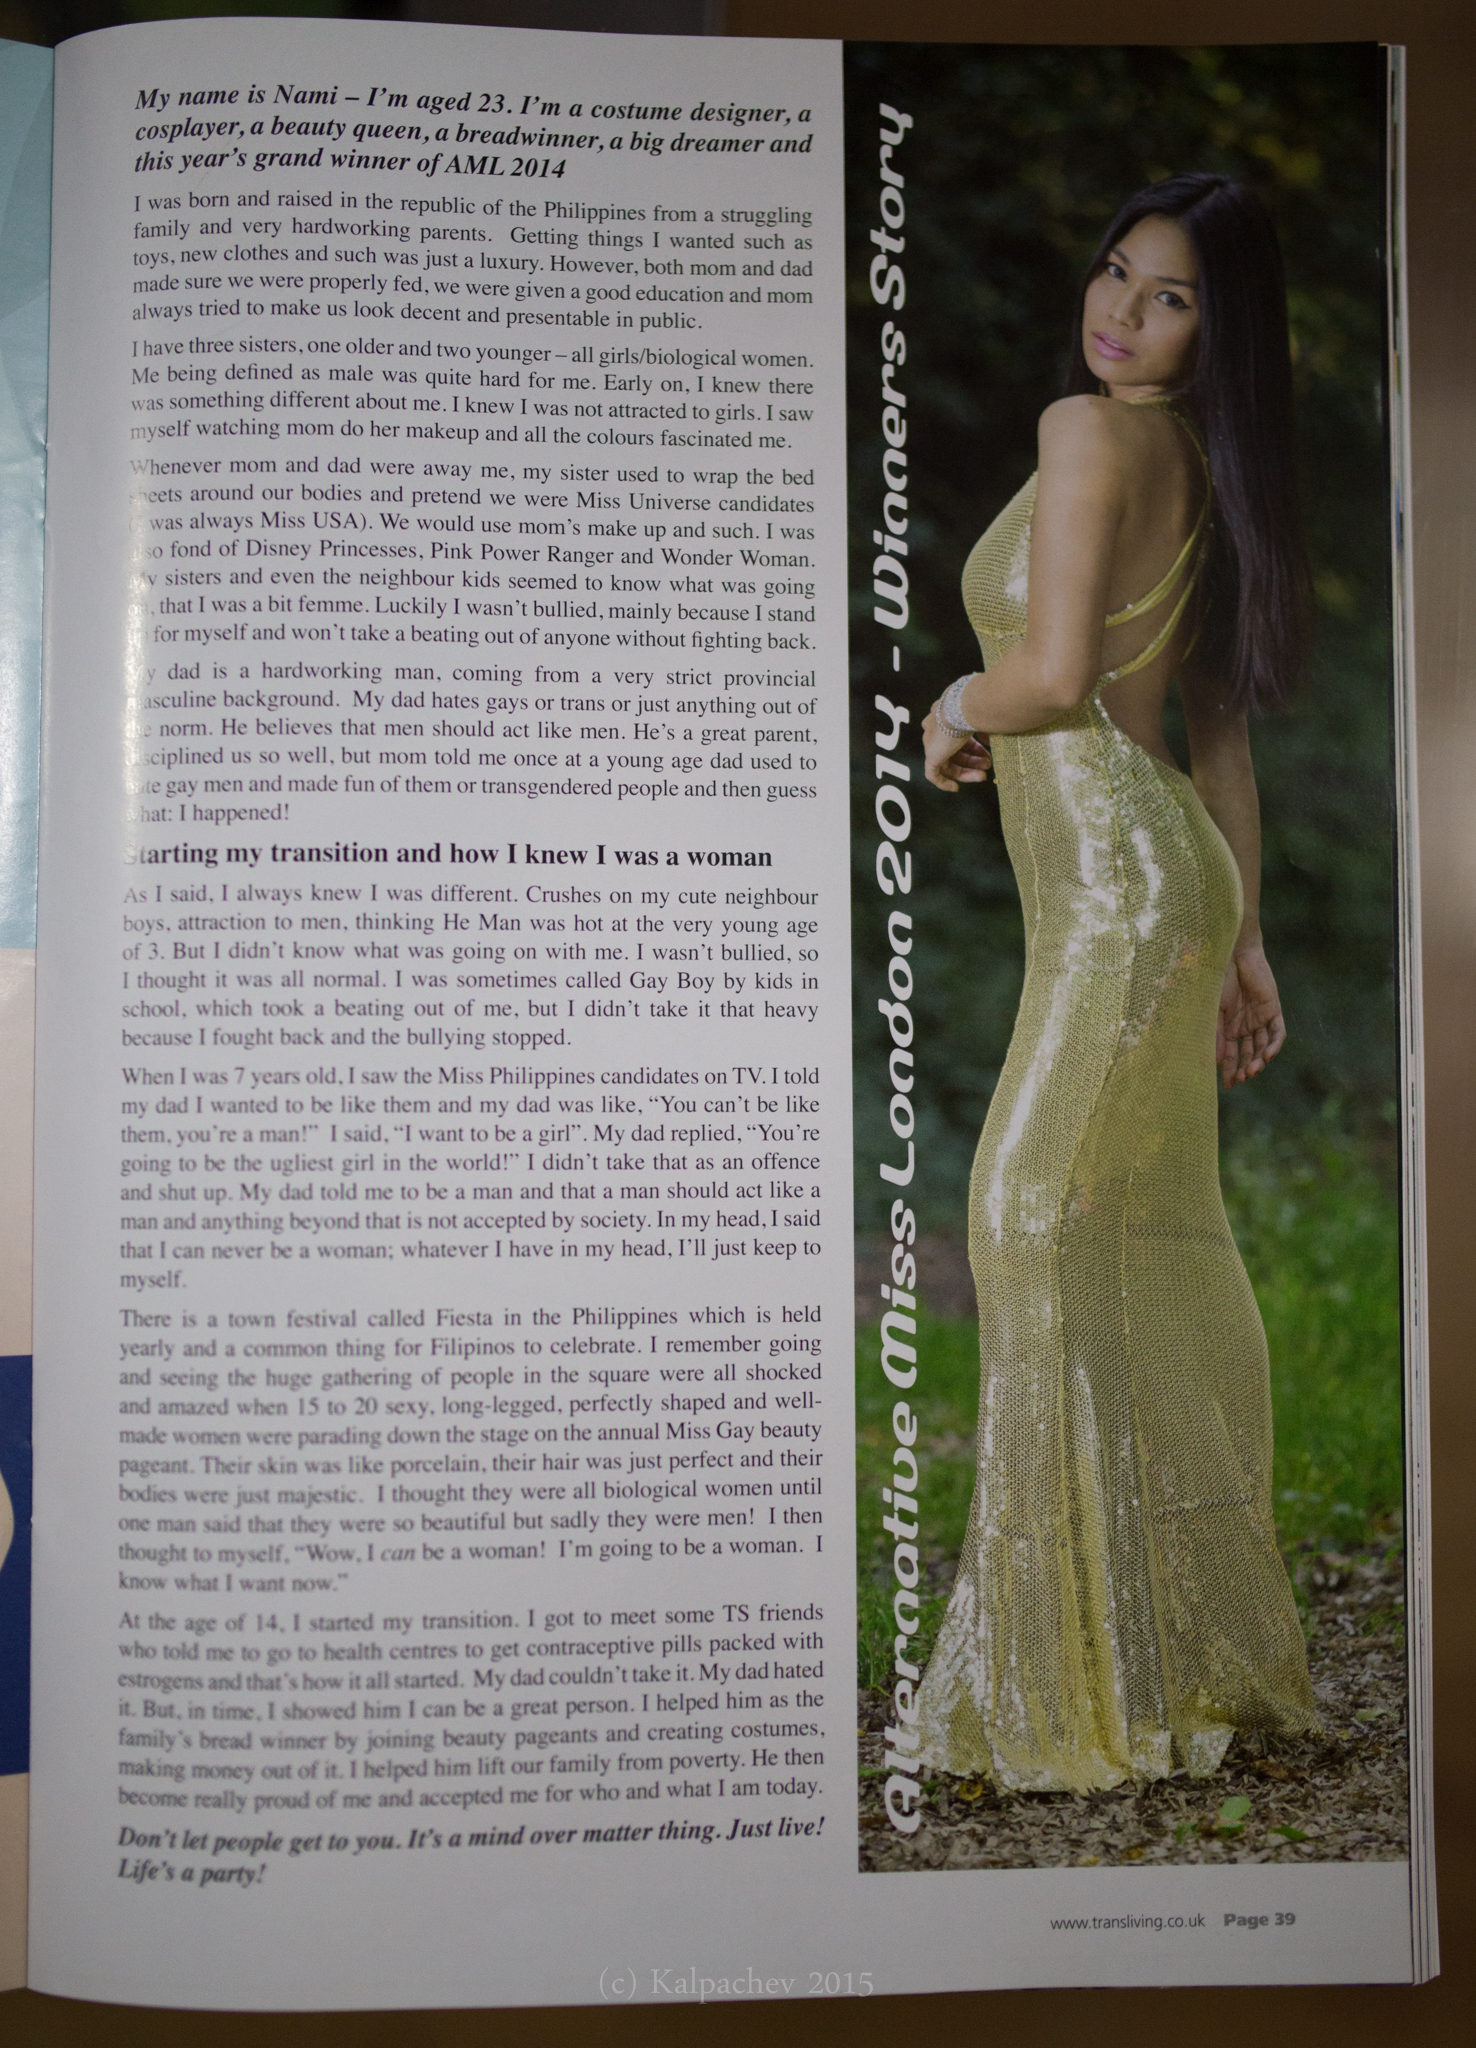 Published in Transliving magazine